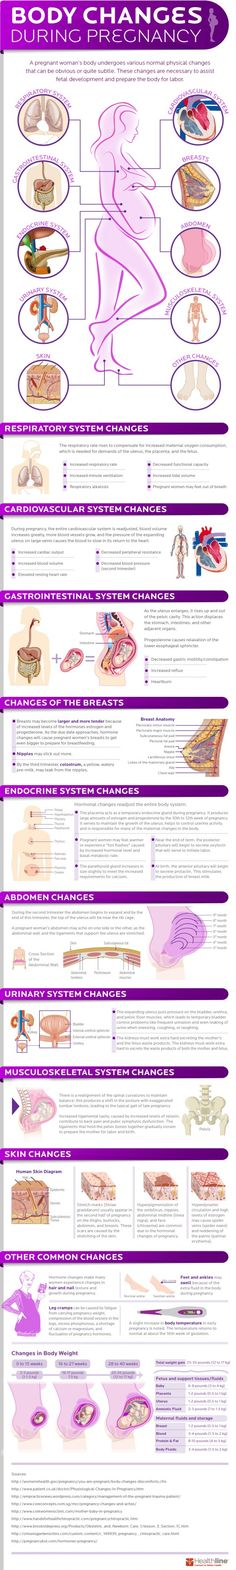 Body Changes During Pregnancy Infographic - This infographic covers all of the changes that take place throughout the body during pregnancy.